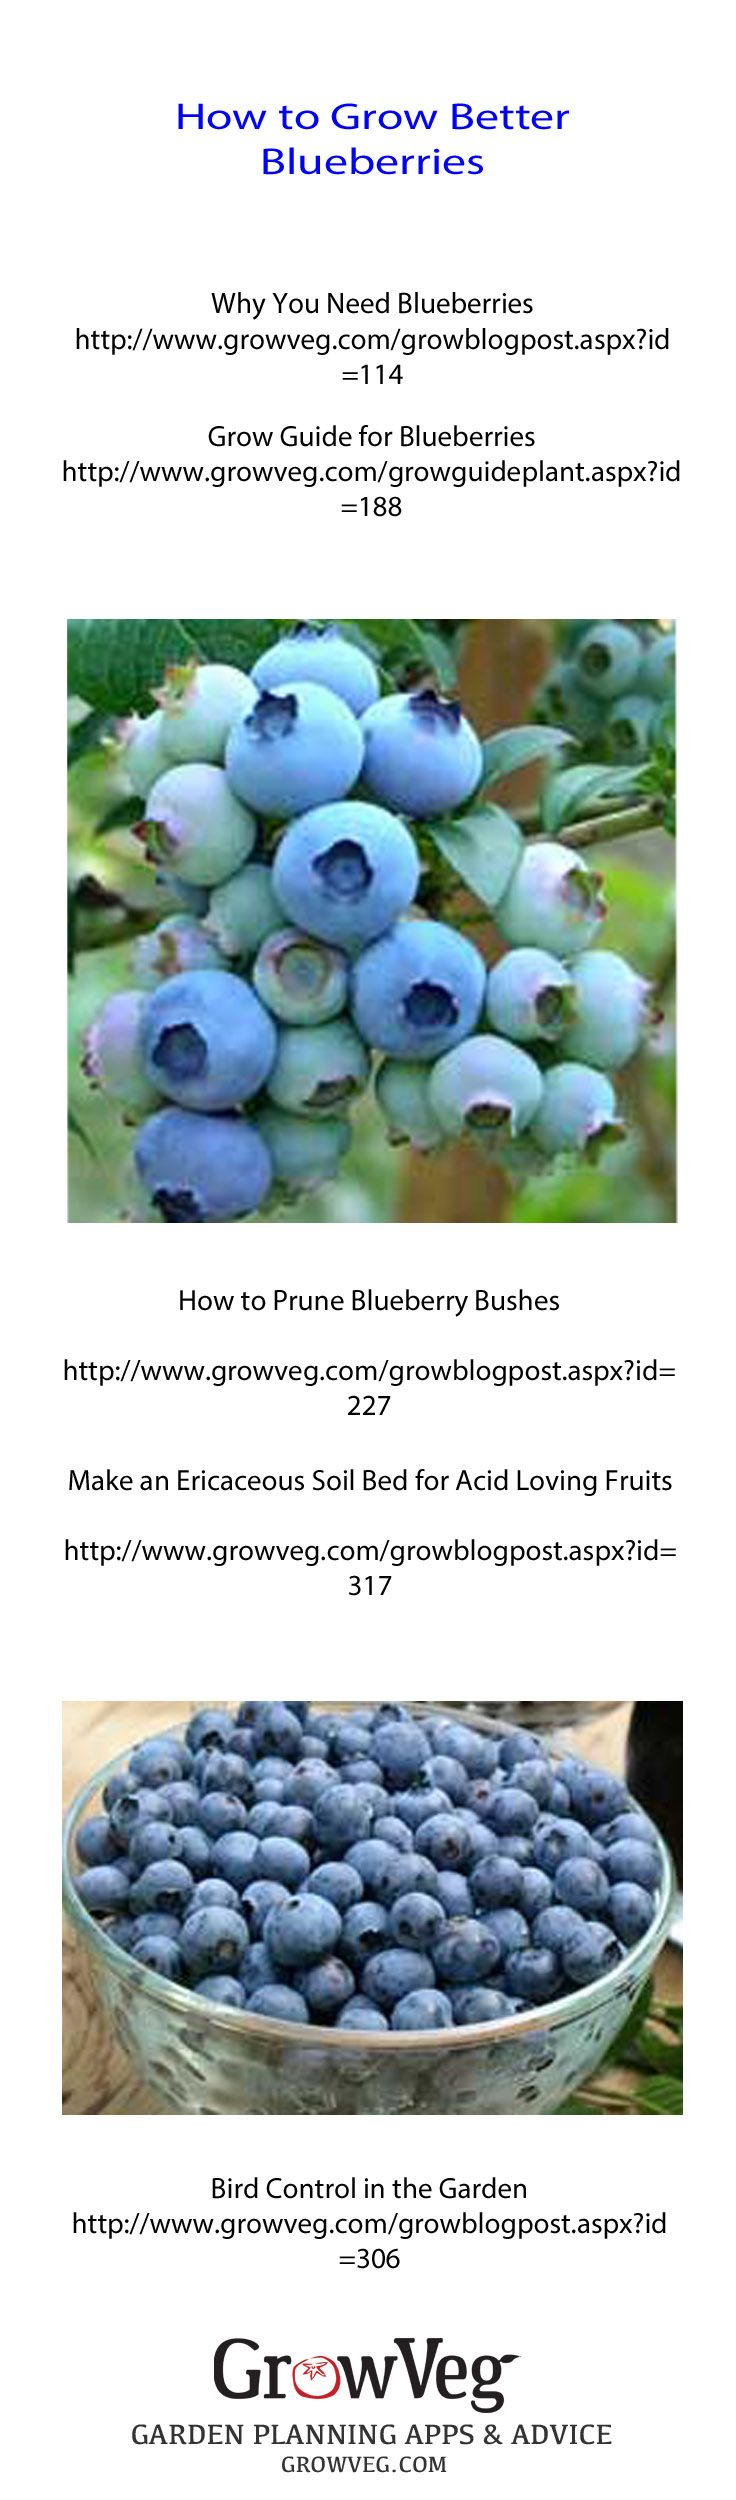 How to get your soil right, to stop bird damage and grow heaps more blueberries than you ever have done before in your own garden.